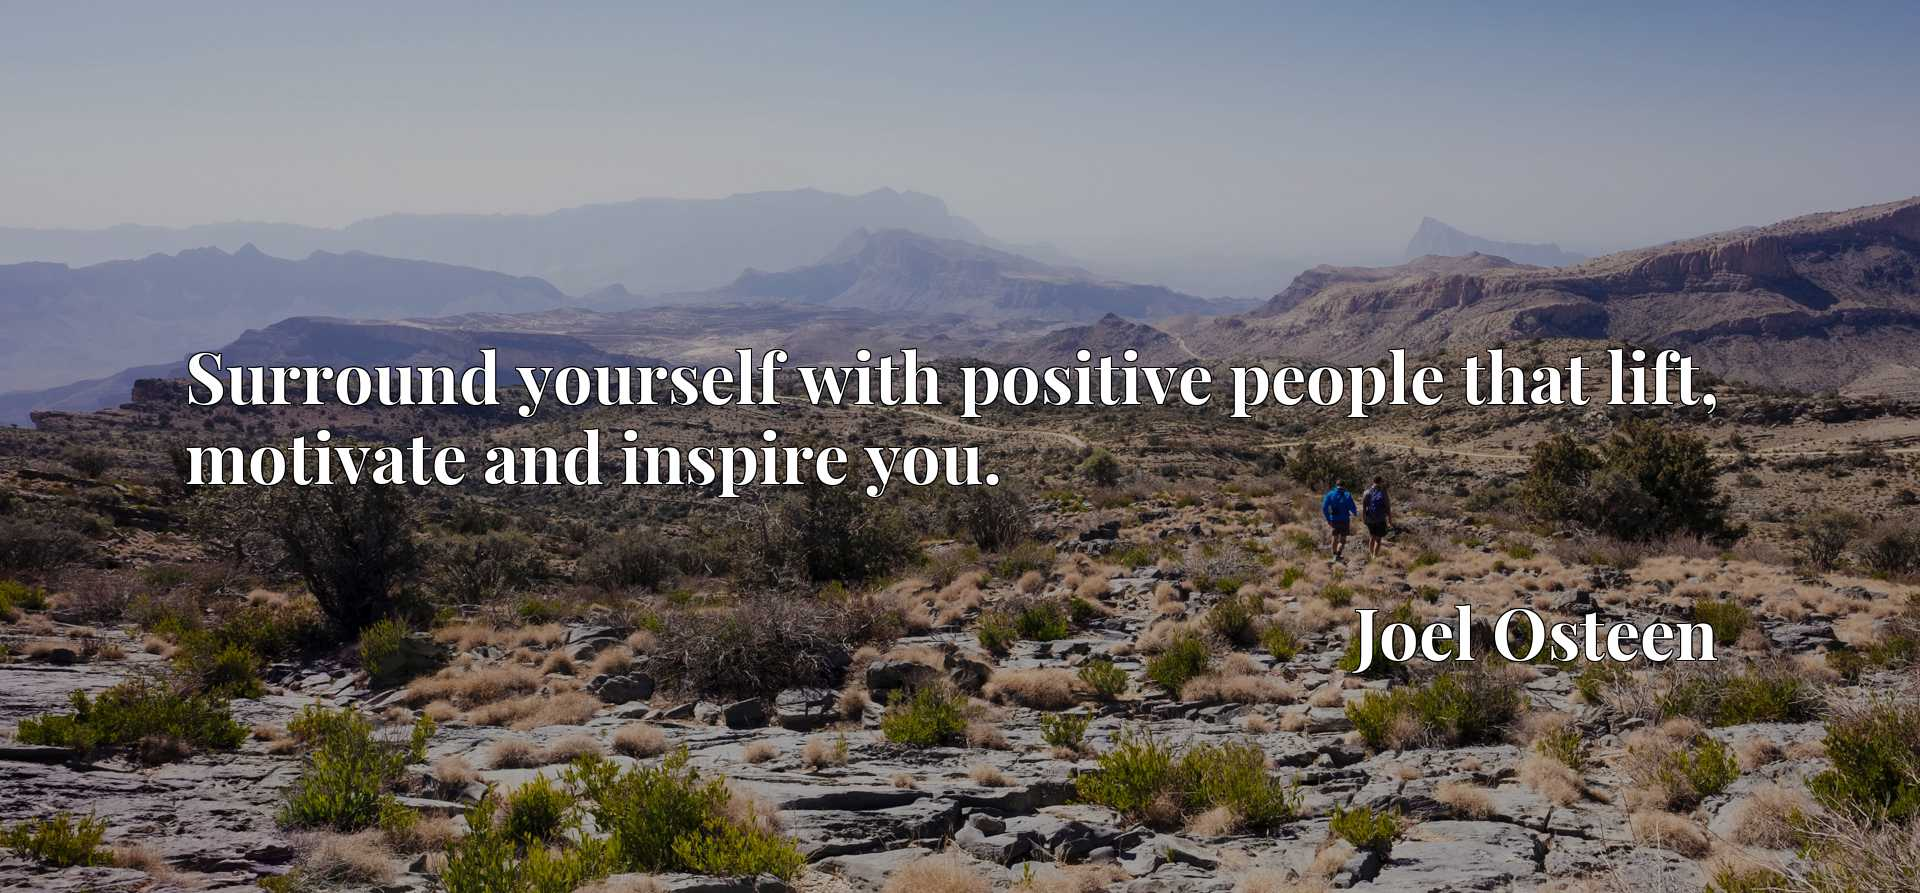 Surround yourself with positive people that lift, motivate and inspire you.